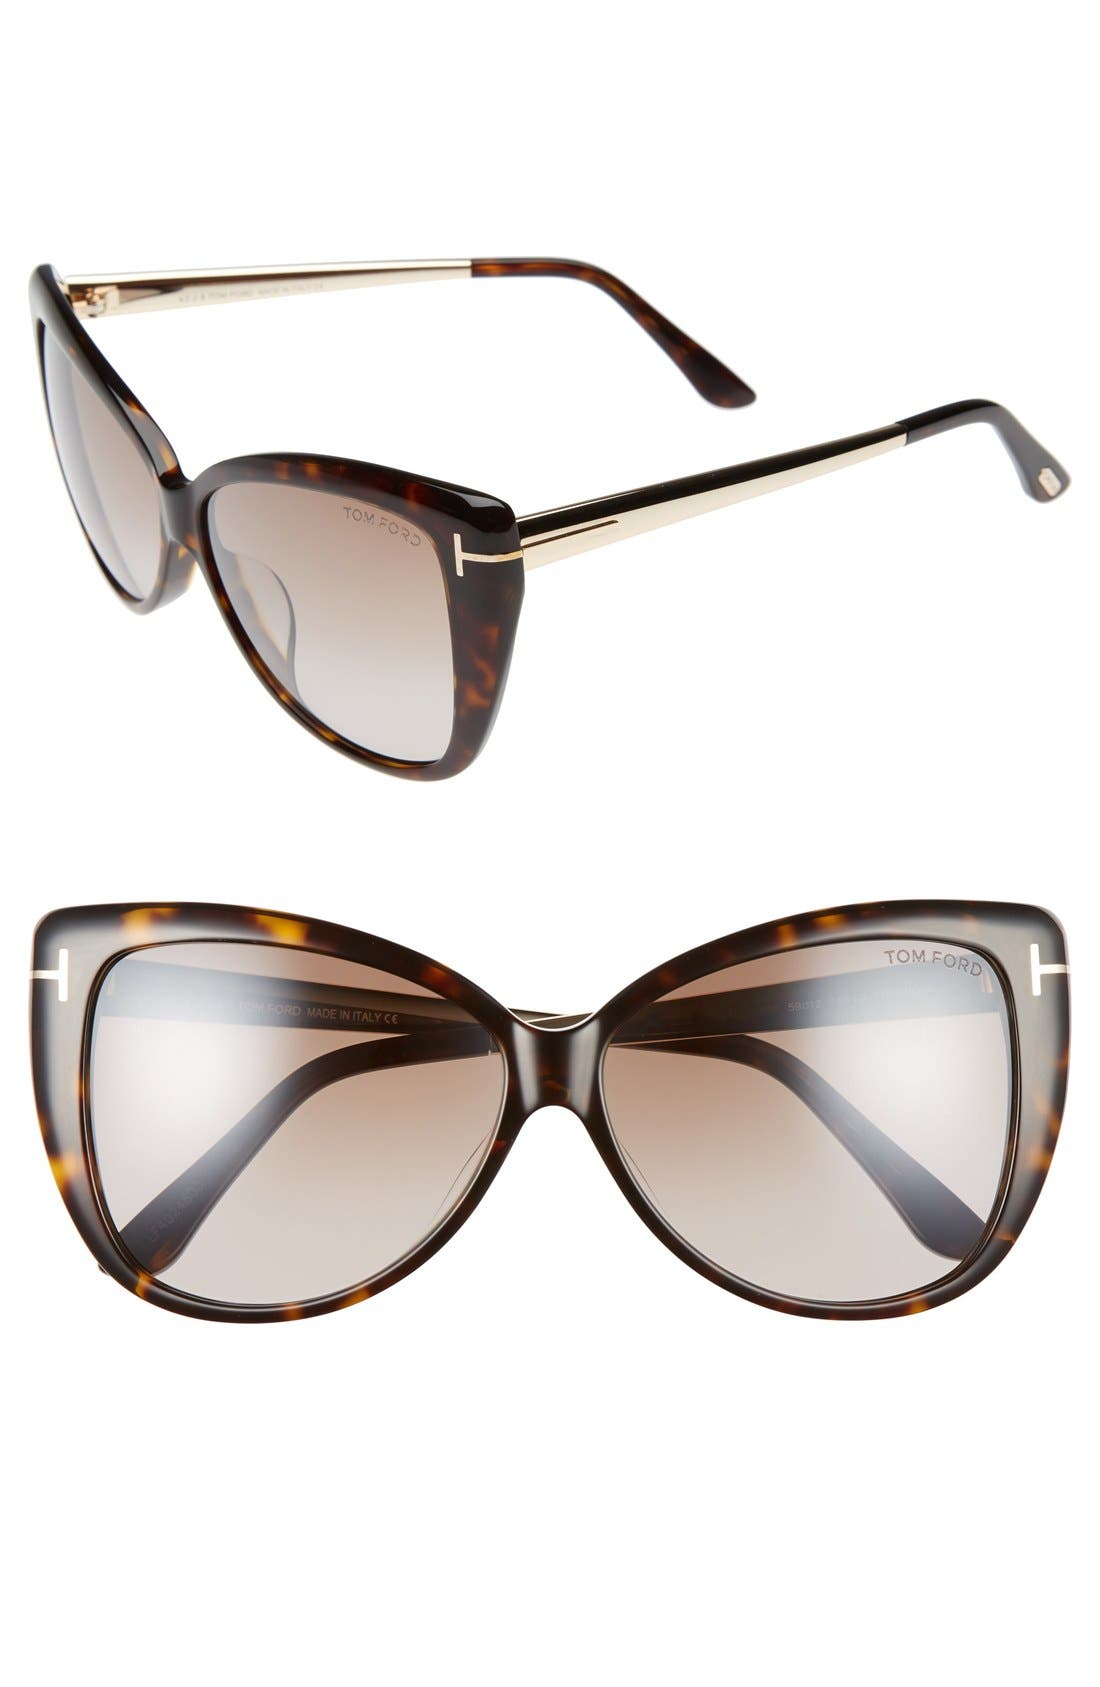 Reveka 59mm Special Fit Butterfly Sunglasses,                             Main thumbnail 1, color,                             Havana/ Rose Gold/ Brown Flash